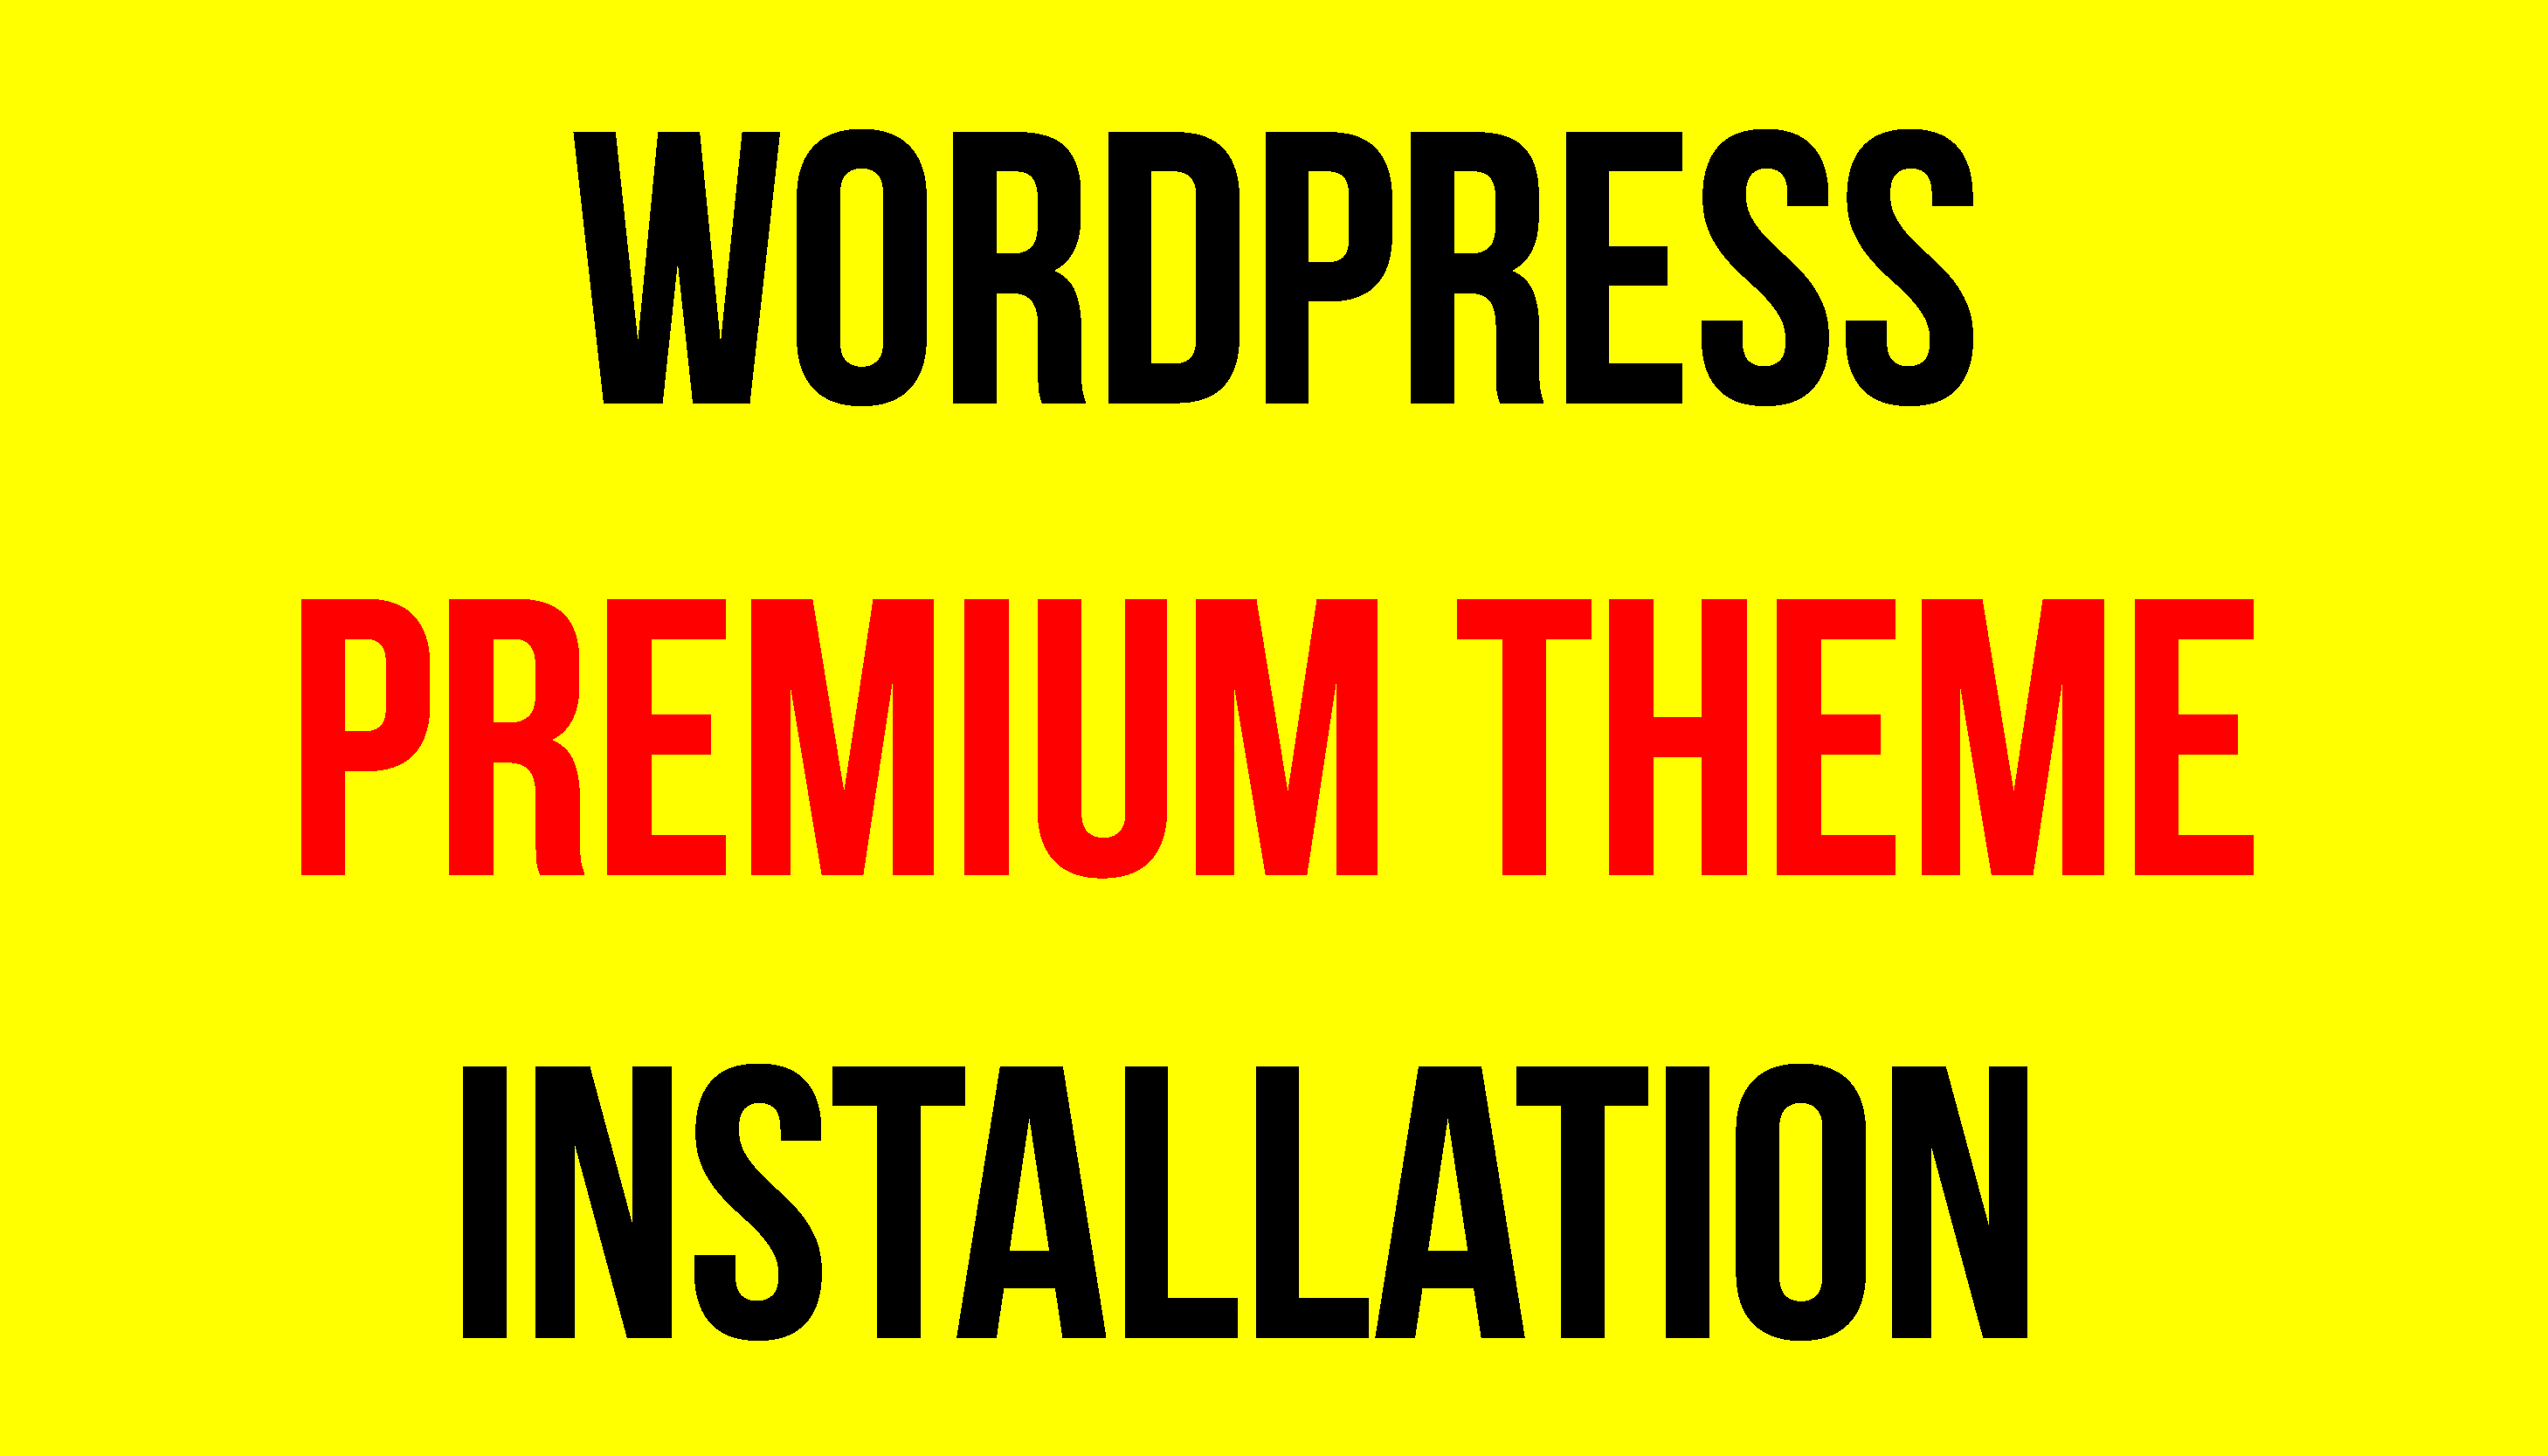 Install Wordpress And Premium Theme With In An Hour for $1